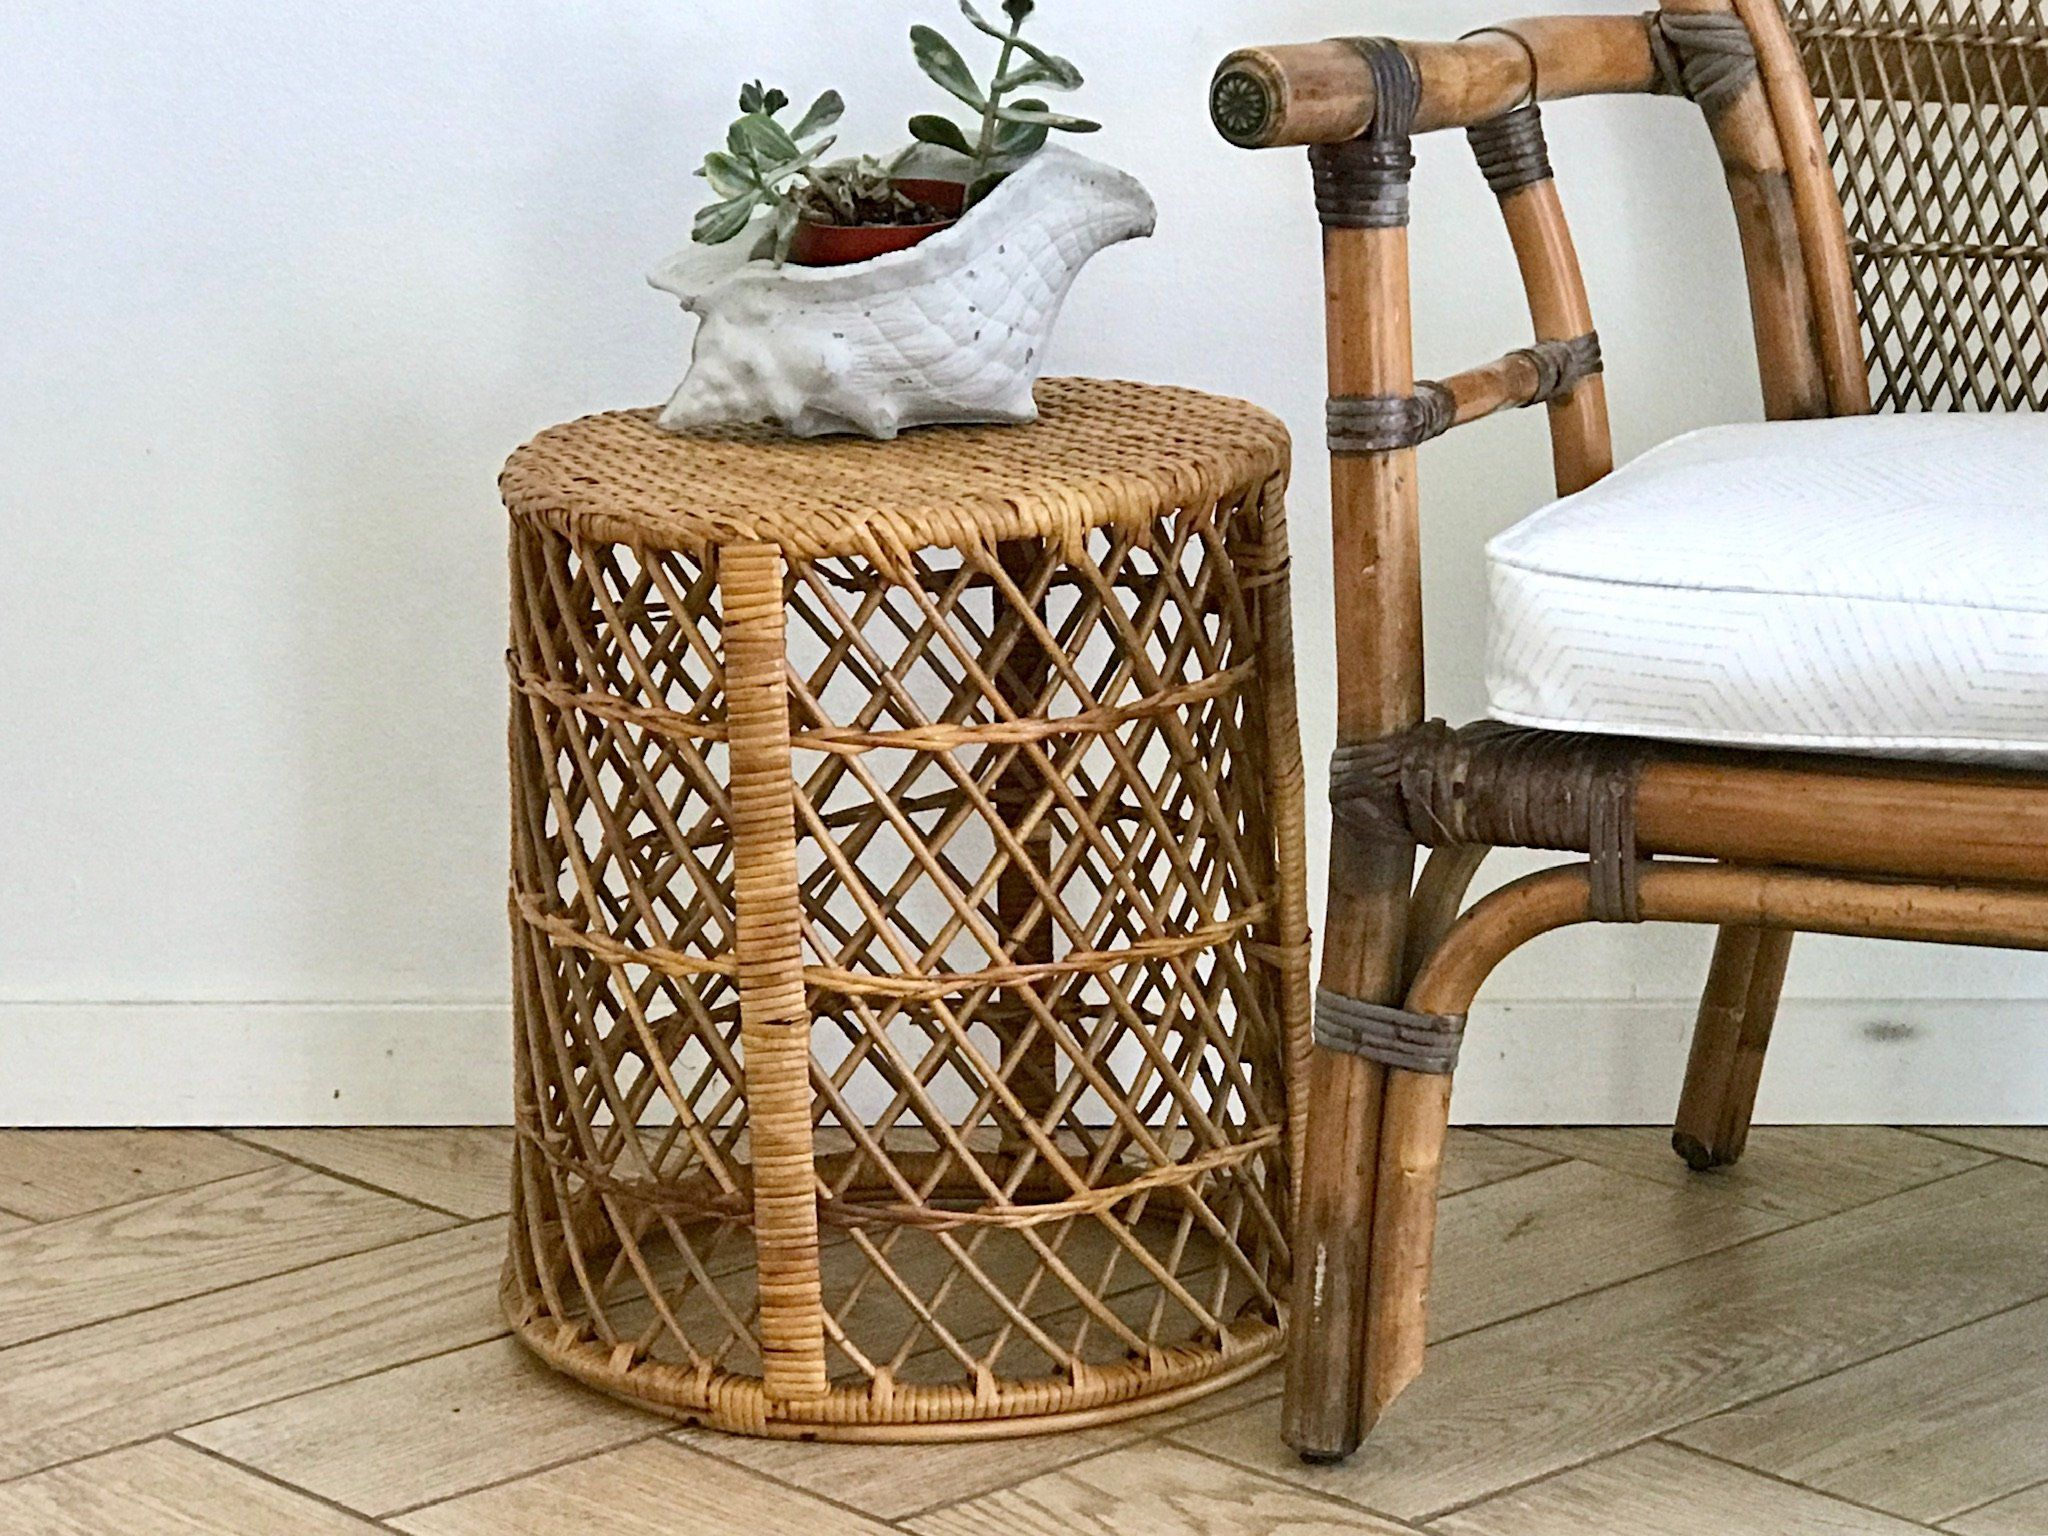 Bamboo Wicker Accent Table Round Woven Rattan Side Table Bamboo Plant Stand 70 S Wicker Plant Holder Bohemian Bambo Accent Table Vintage Wicker Table Rattan Side Table Accent Table